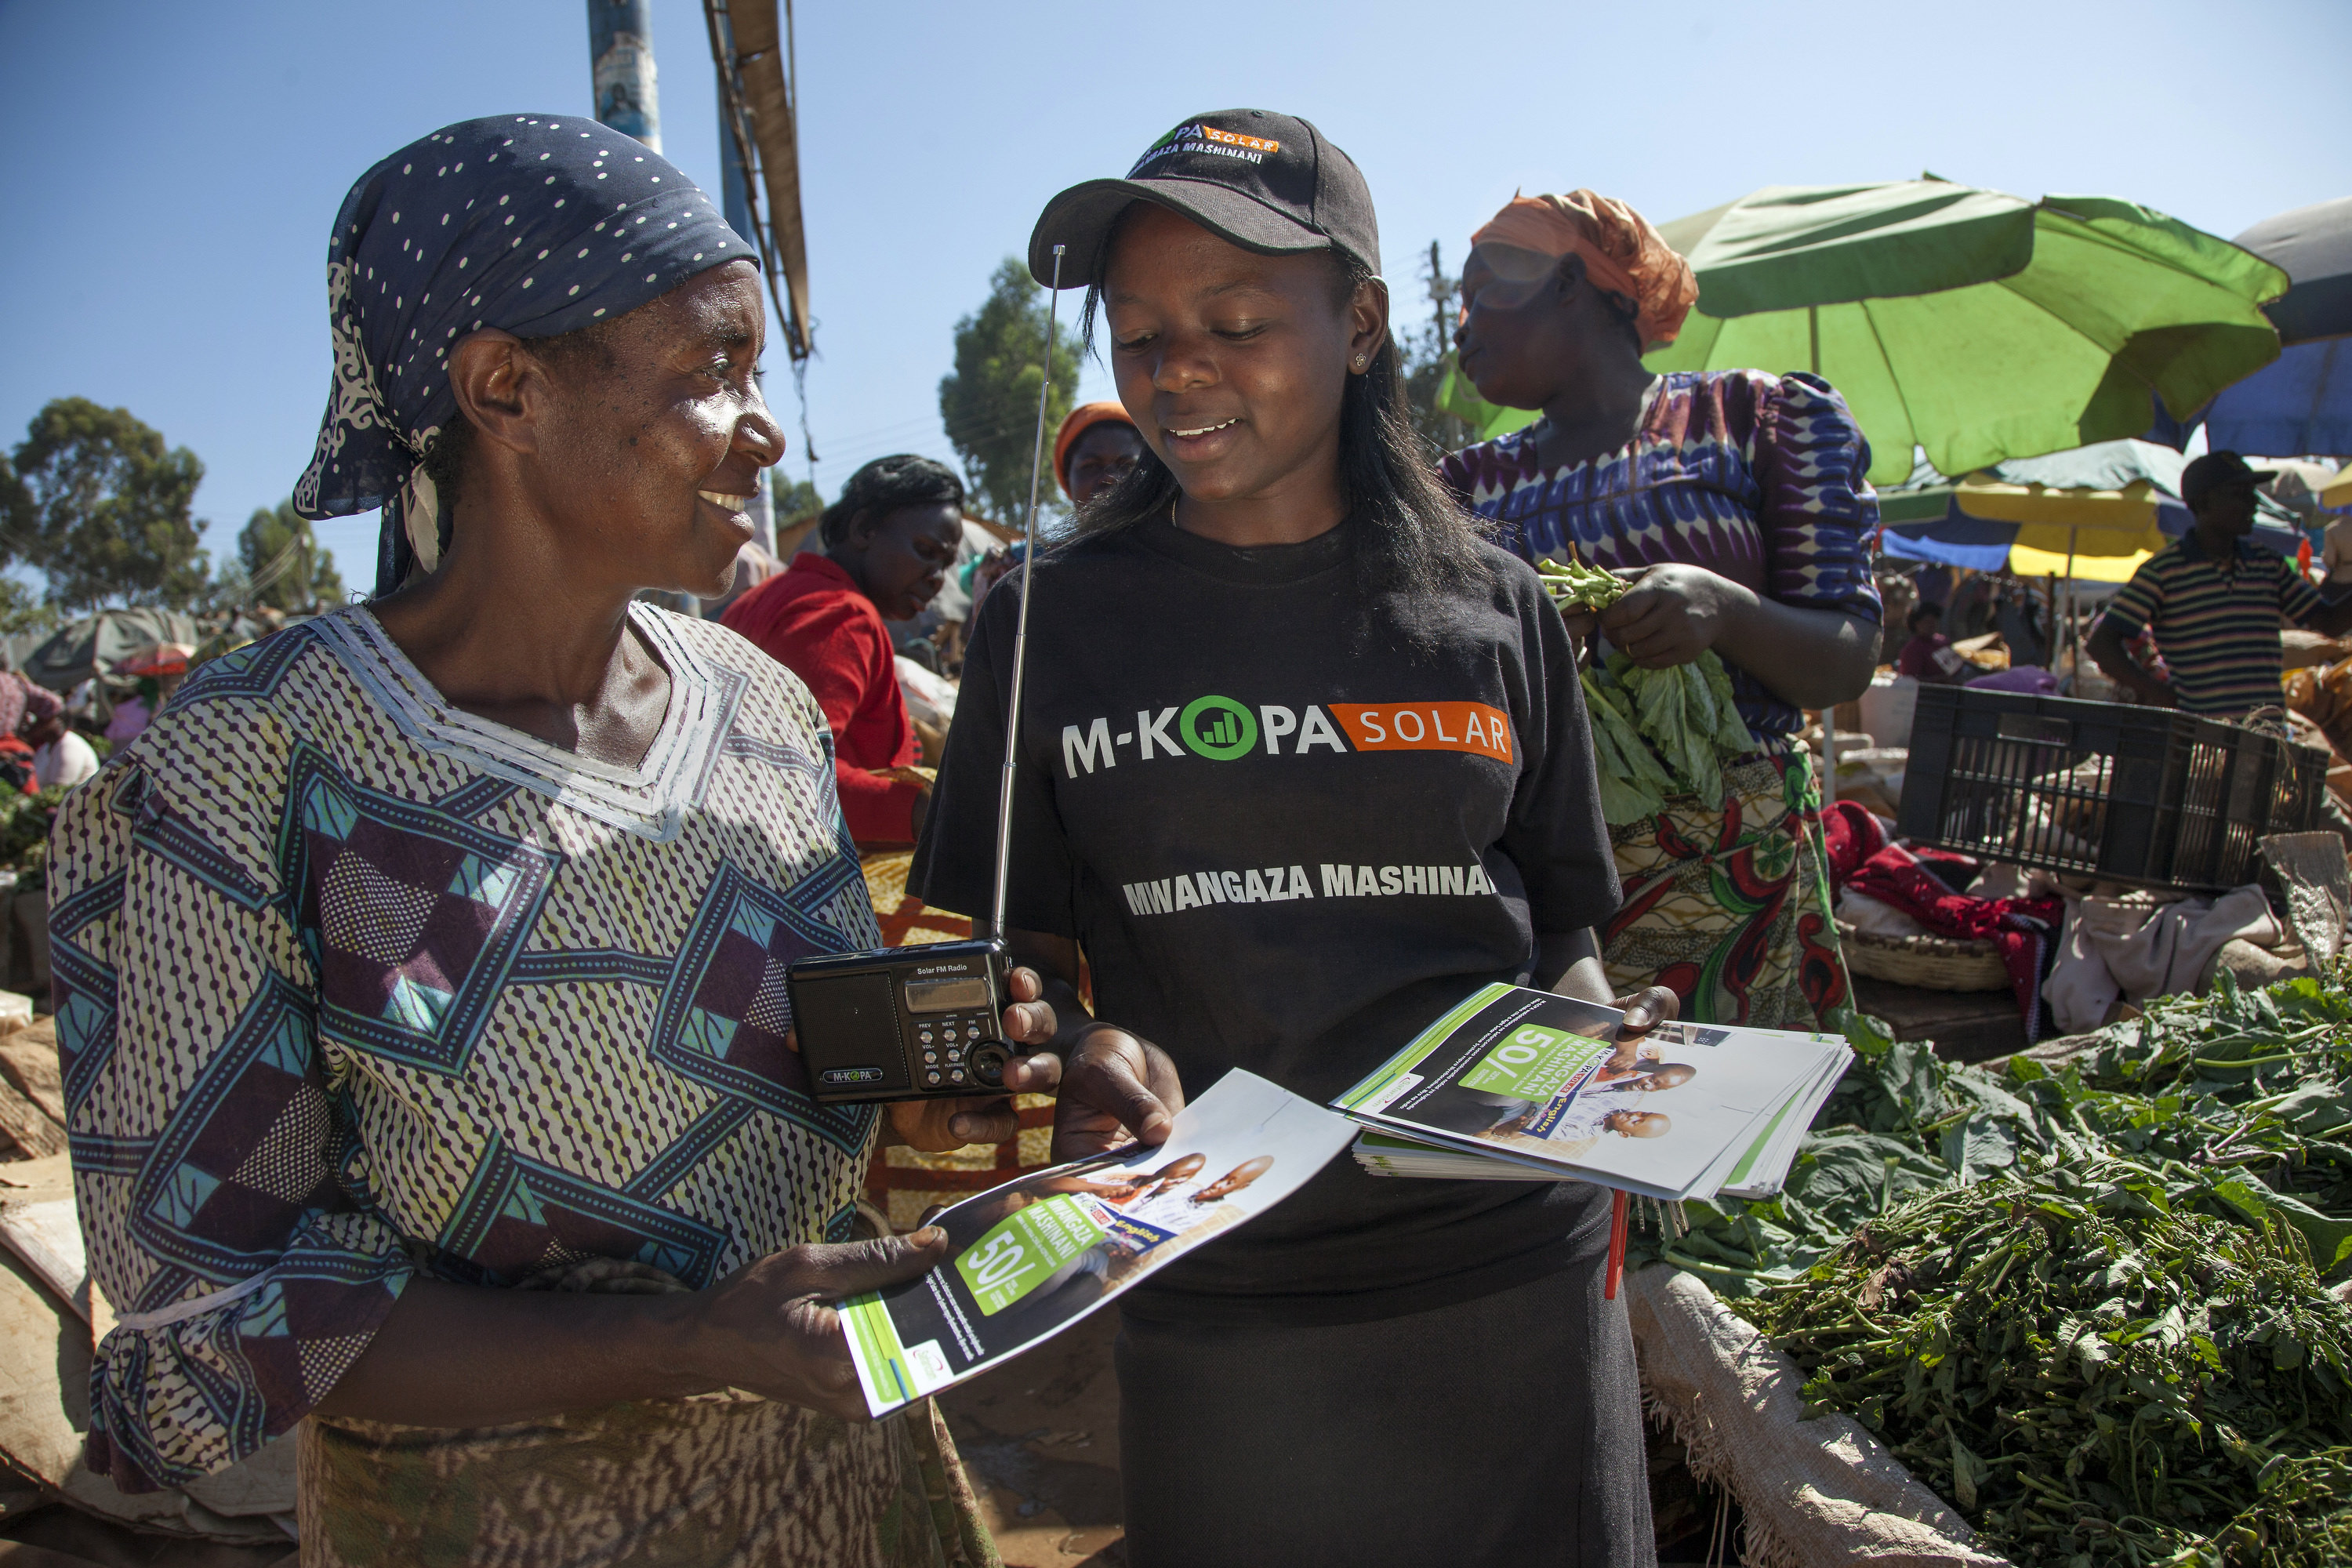 A M-KOPA retailer hands out flyers about the solar product.